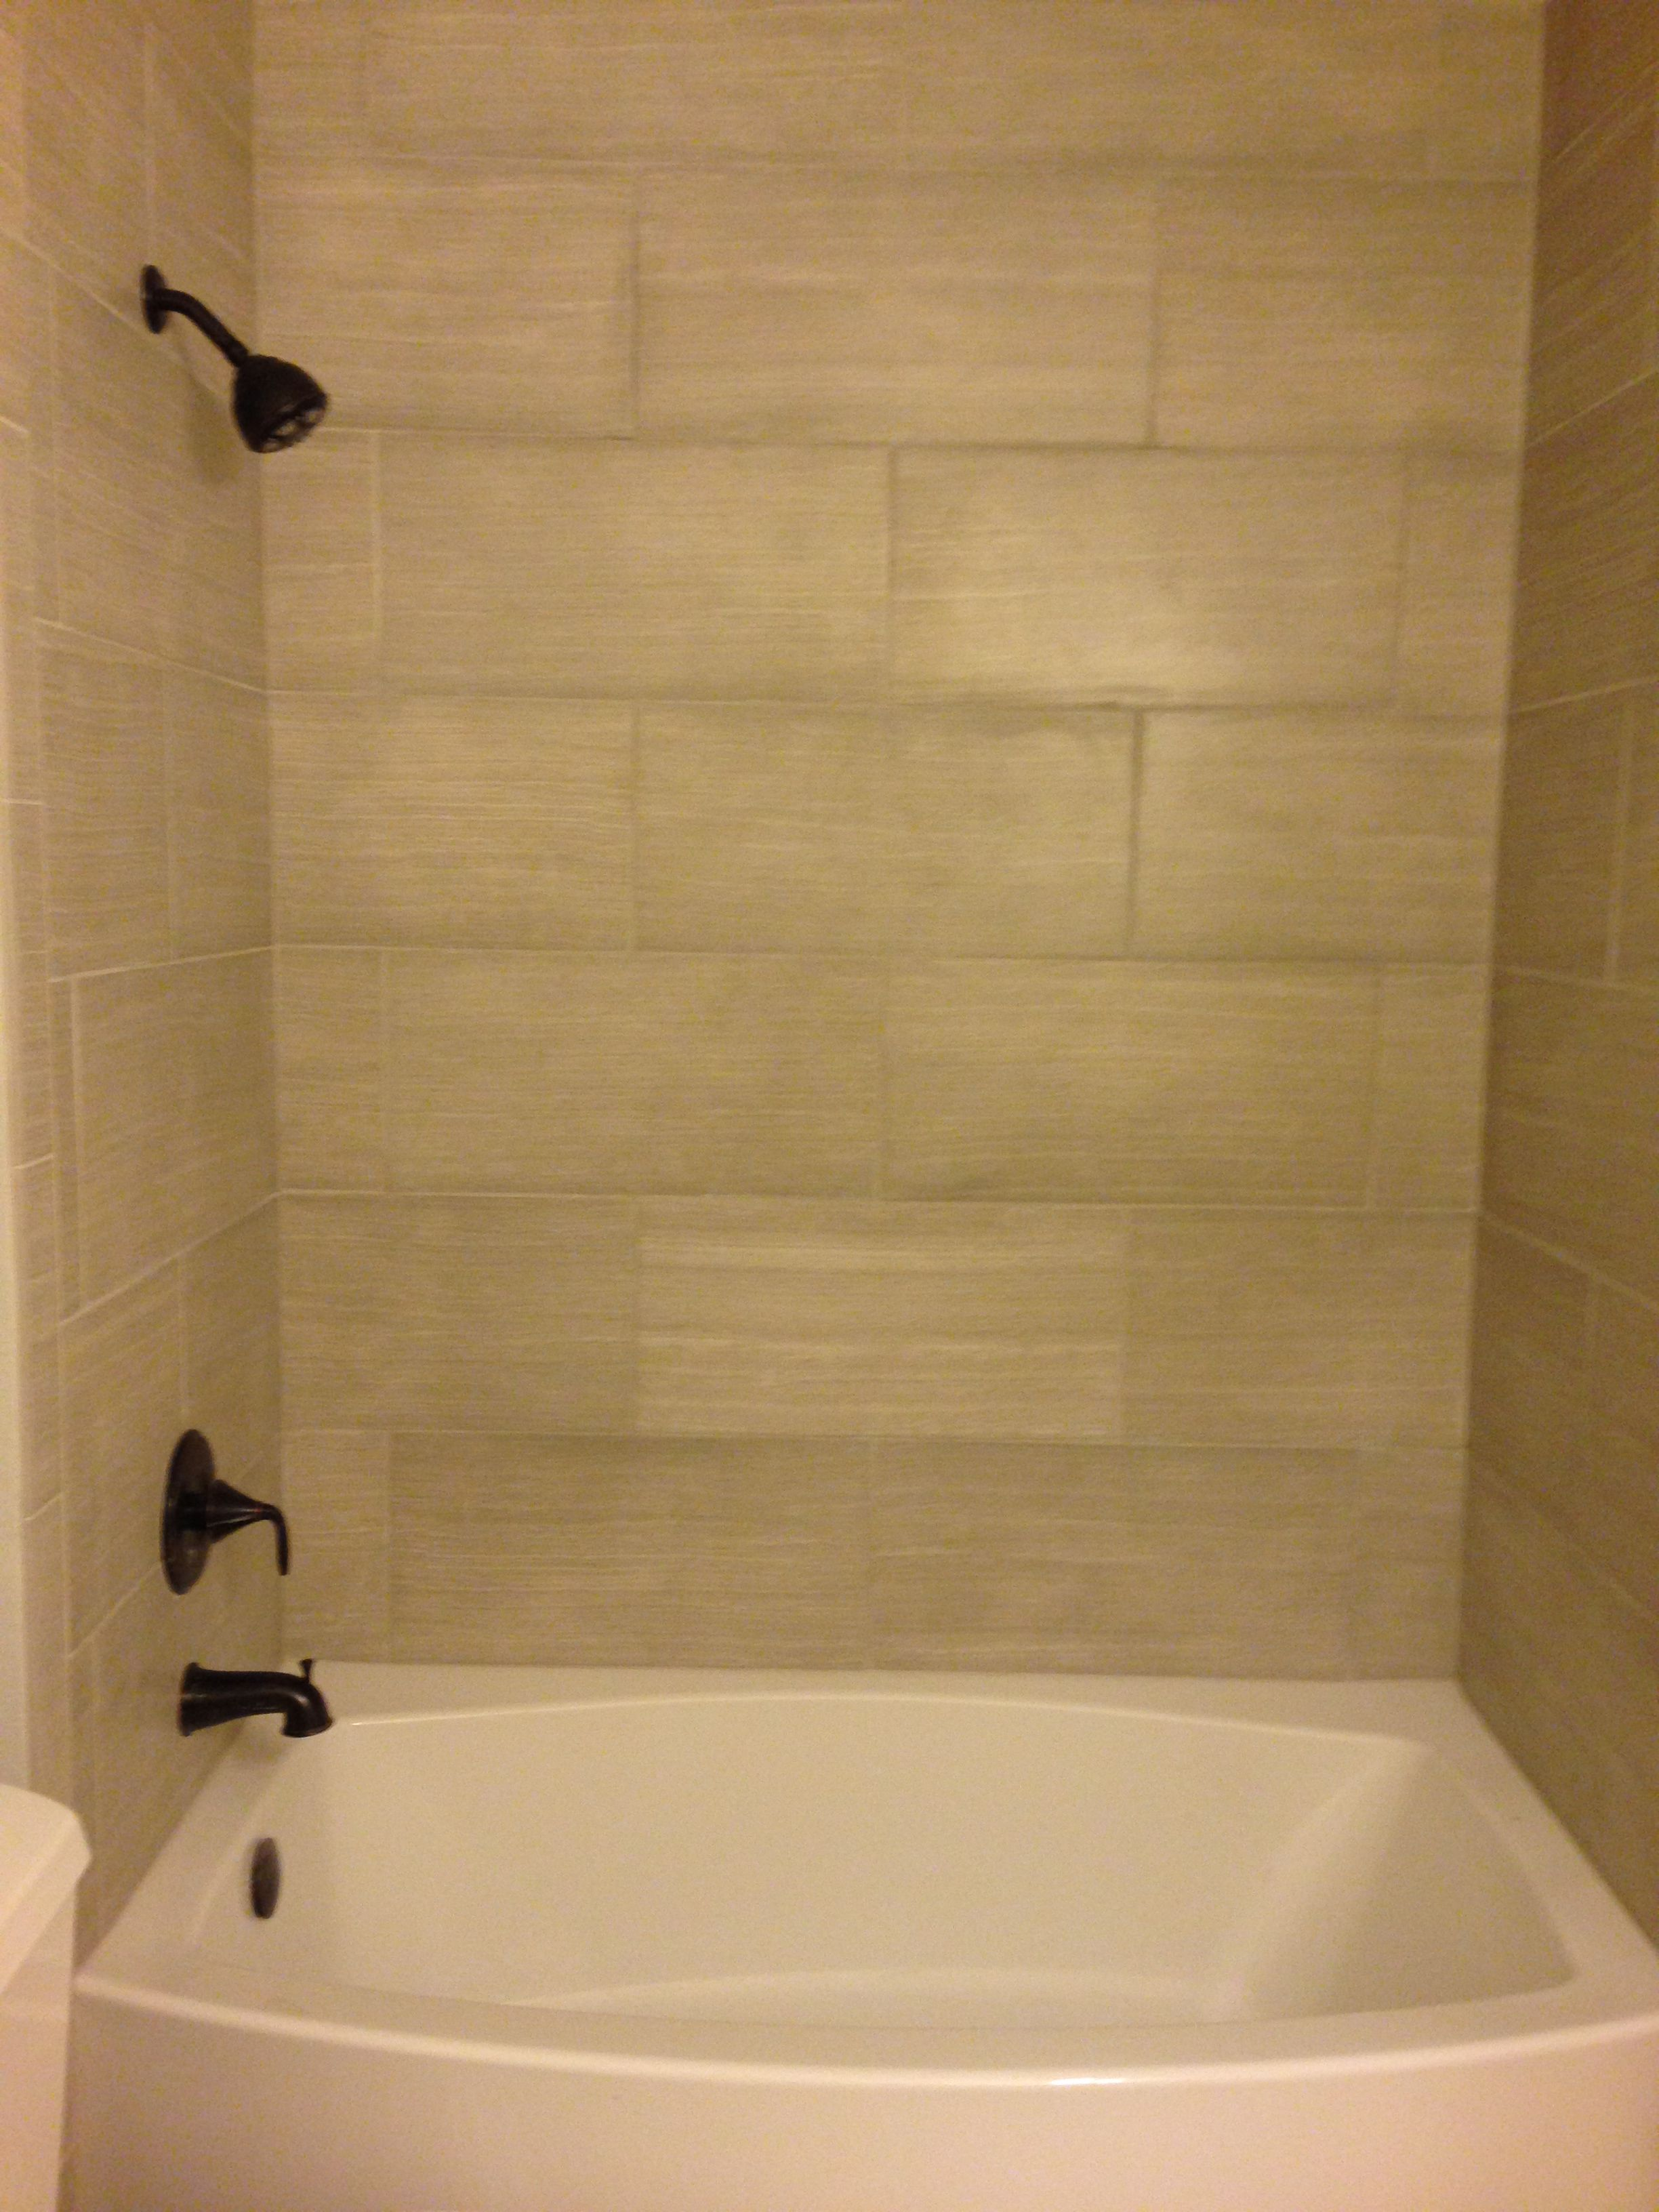 Leonia Silver tile from Lowes Kohler Expanse Curved tub. Perfect tub ...